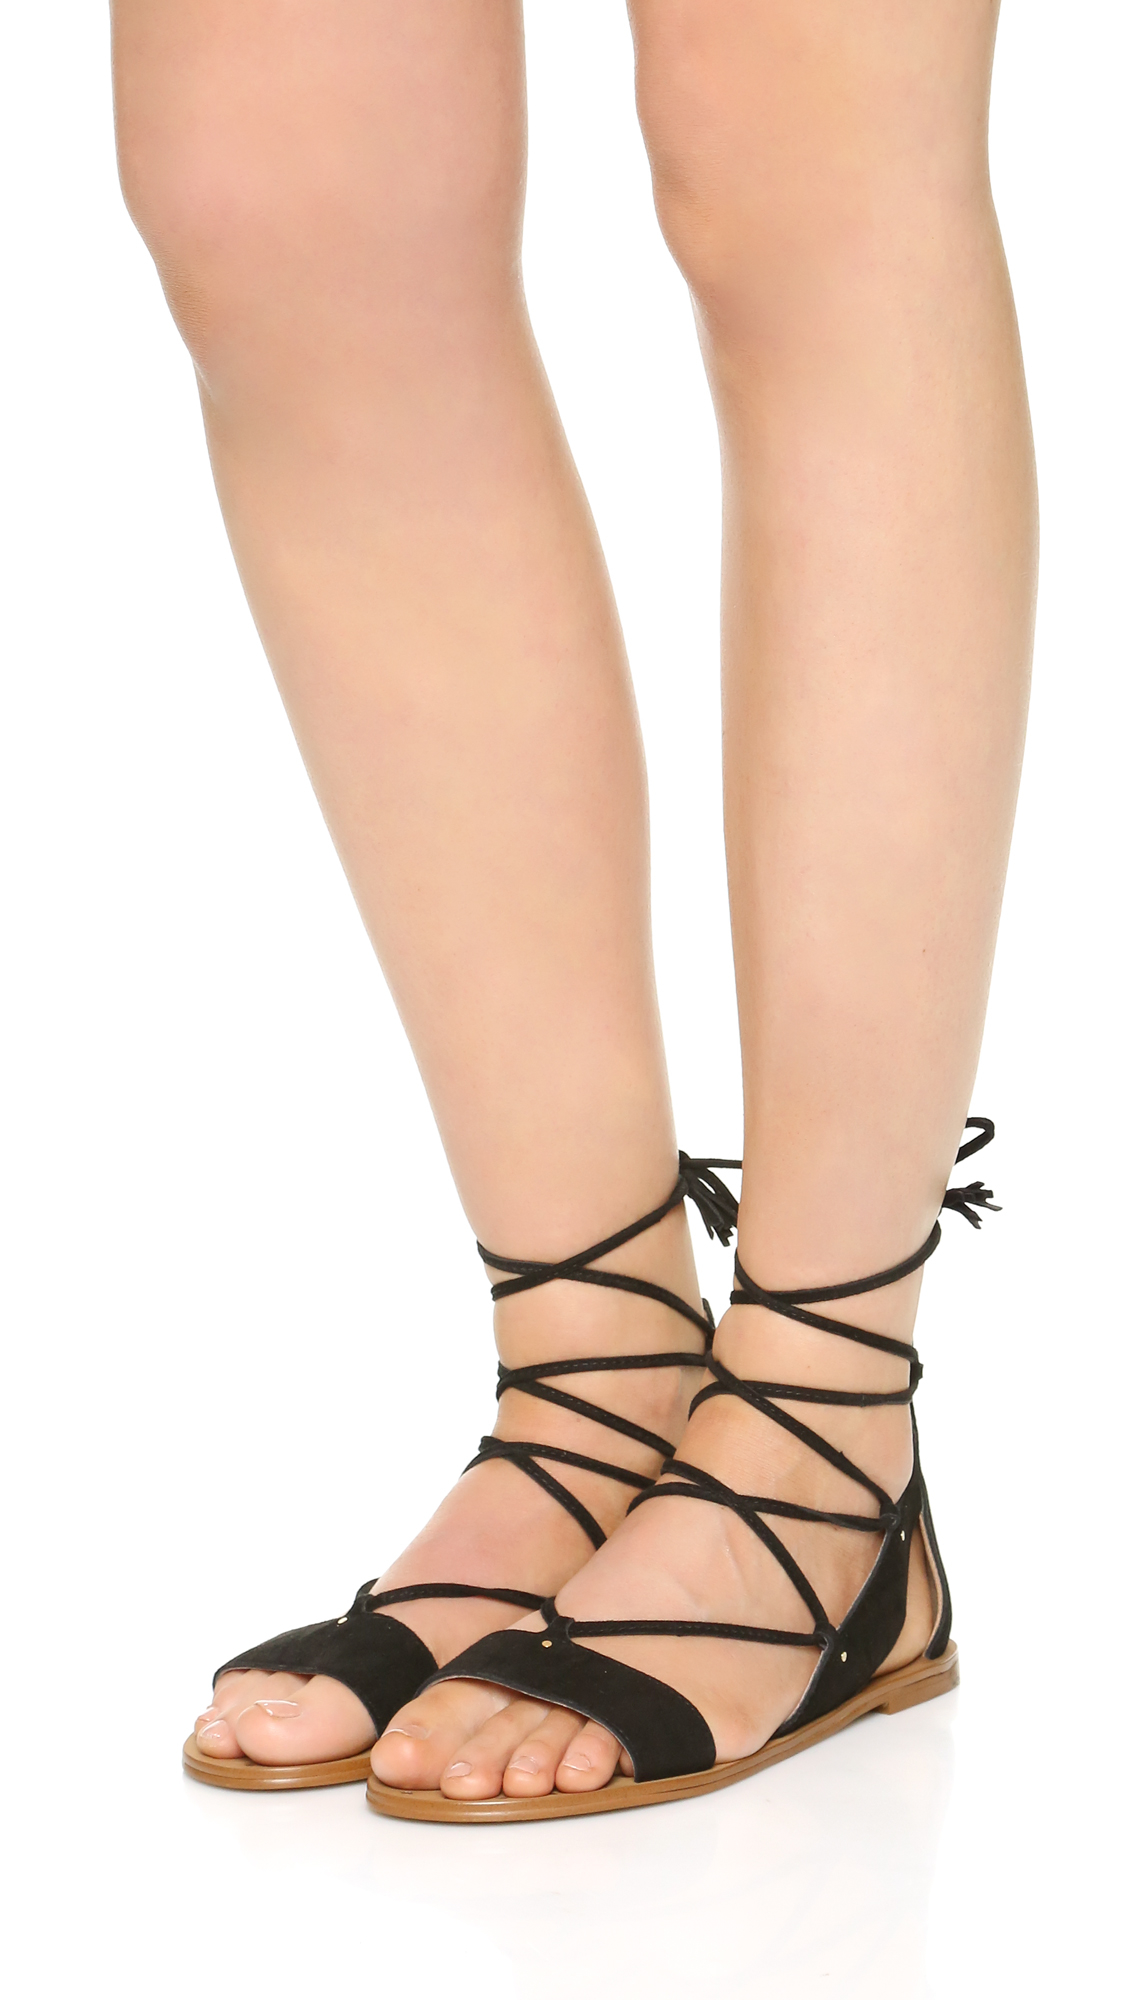 602b45f5752a Gallery. Previously sold at  Shopbop · Women s Lace Up Flats Women s  Gladiator ...